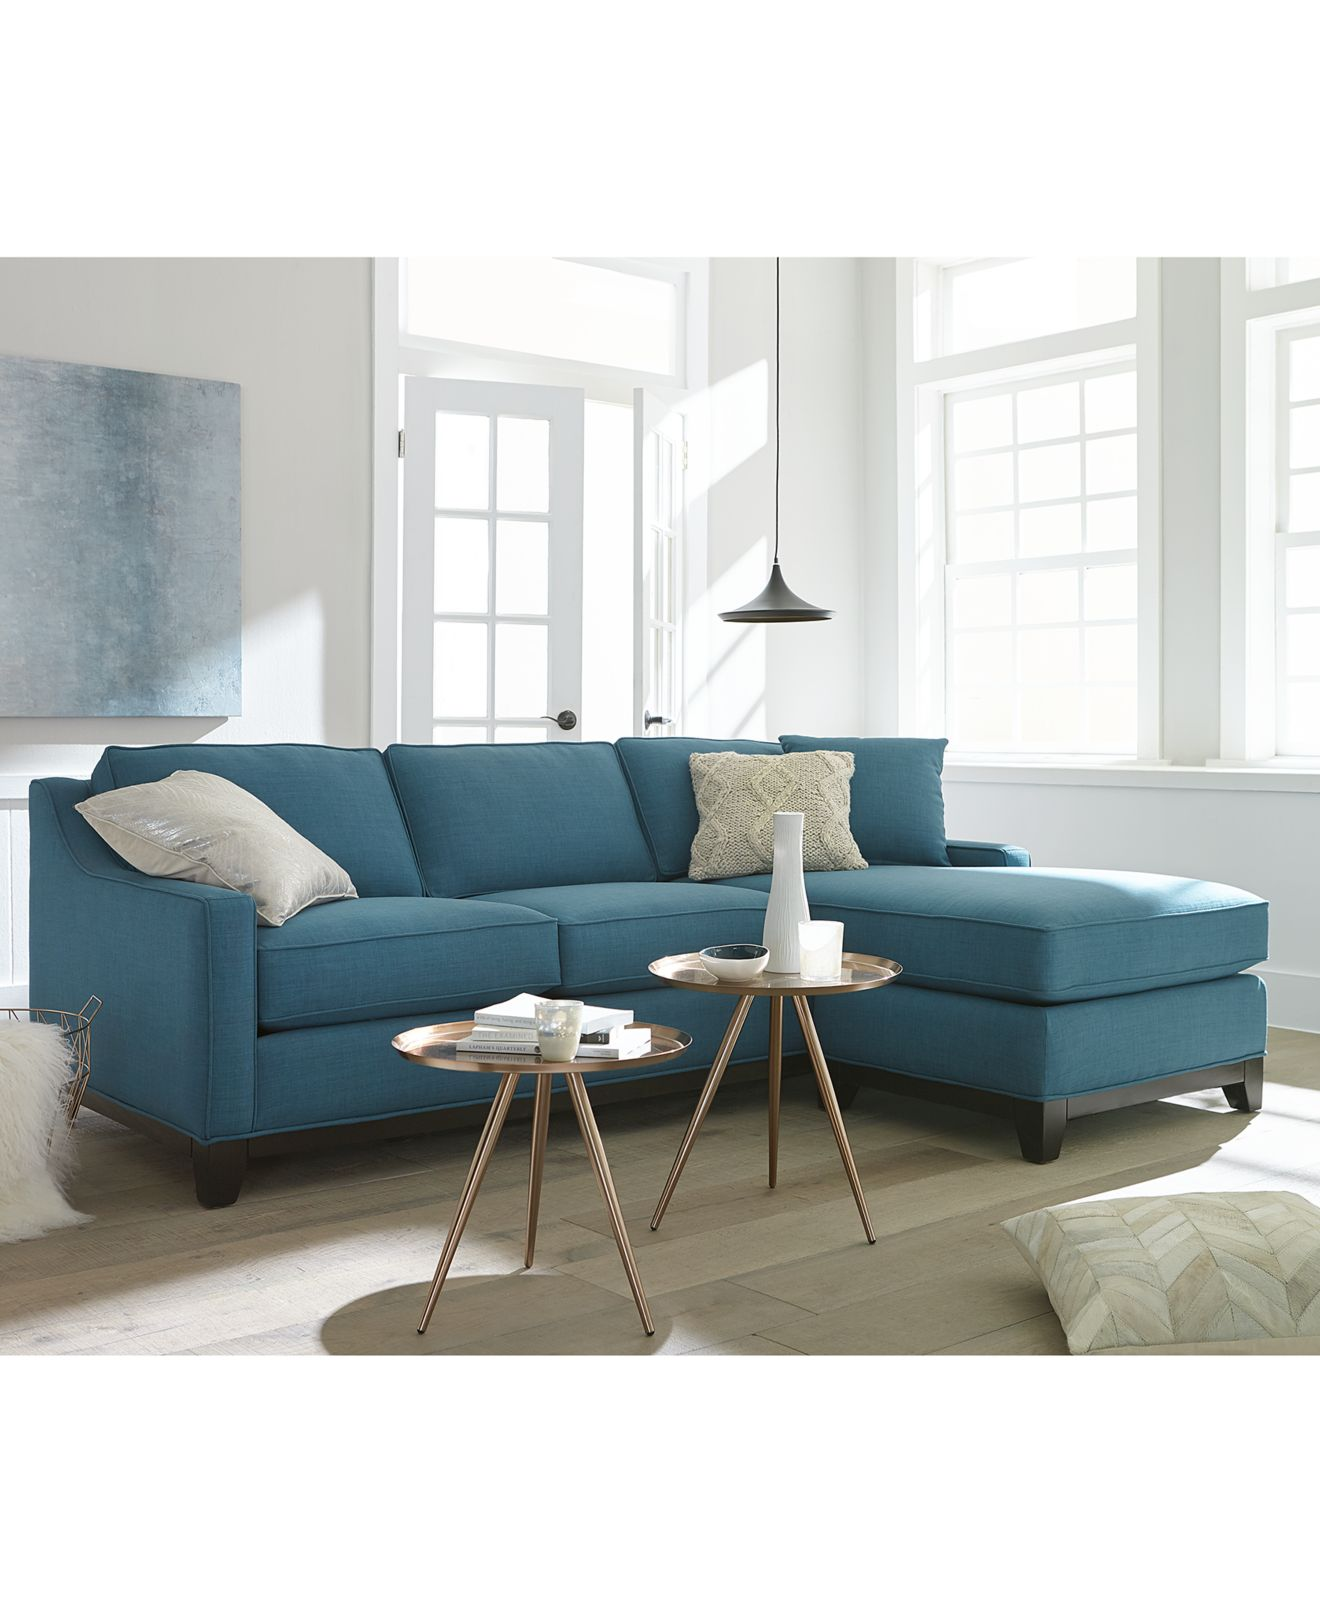 bernhardt furniture - shop for and buy bernhardt furniture online